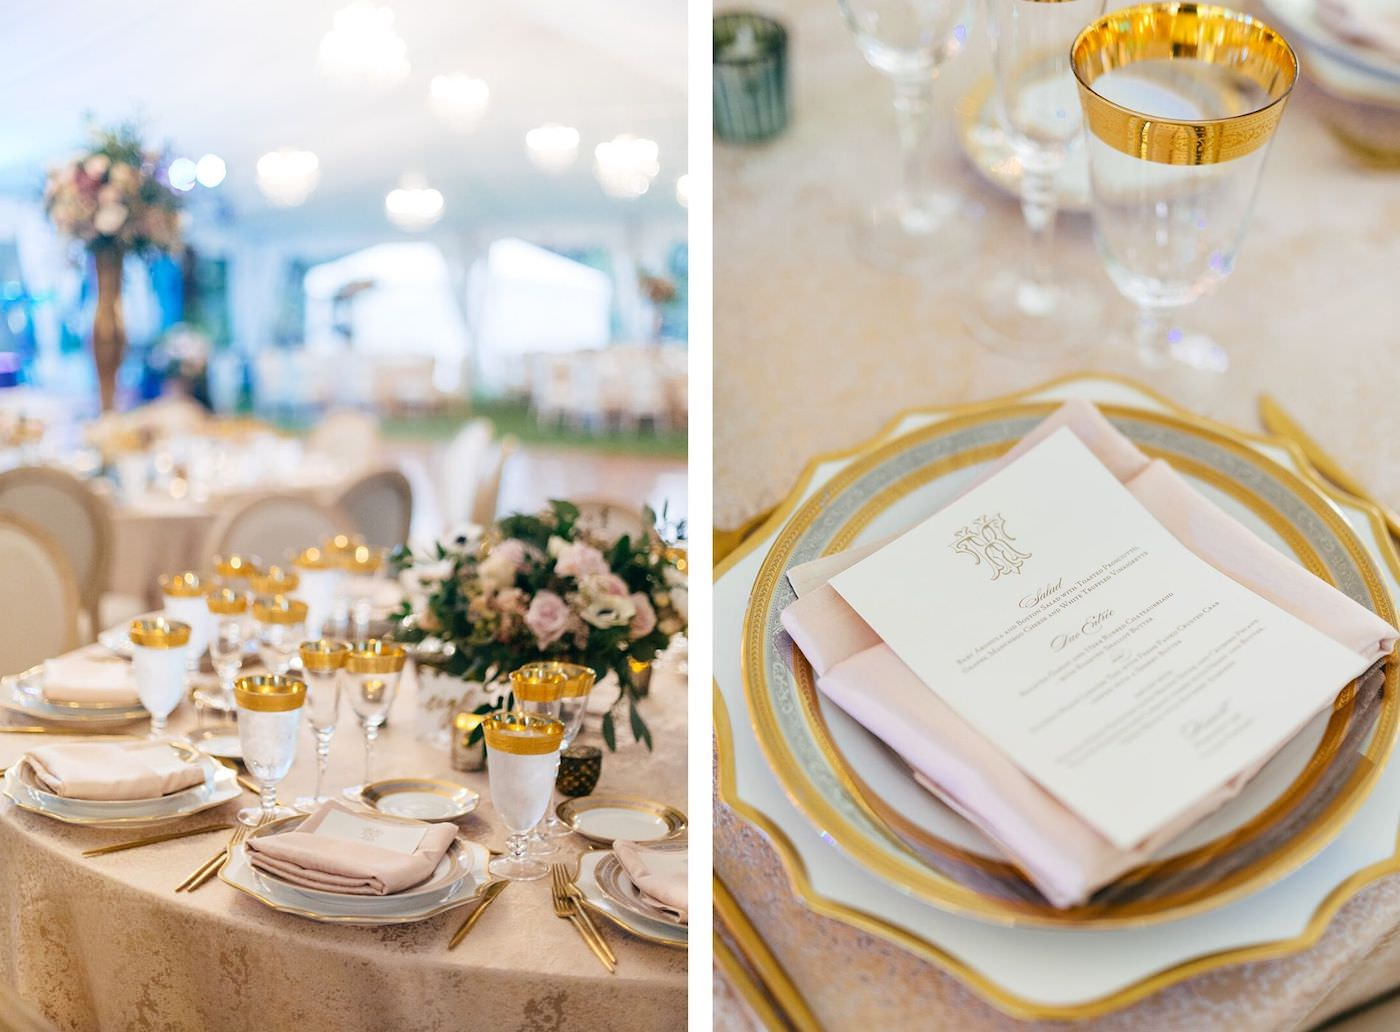 Romantic, Garden Inspired Wedding Reception Decor In White Tented Outdoor Florida Wedding, Round Tables with Gold Linens,Modern Circle Back Chairs, Gold Accented Table Setting, Printed Menu, Low Floral centerpiece with Blush Pink Flowers and Greenery   Sarasota Wedding Planner NK Weddings